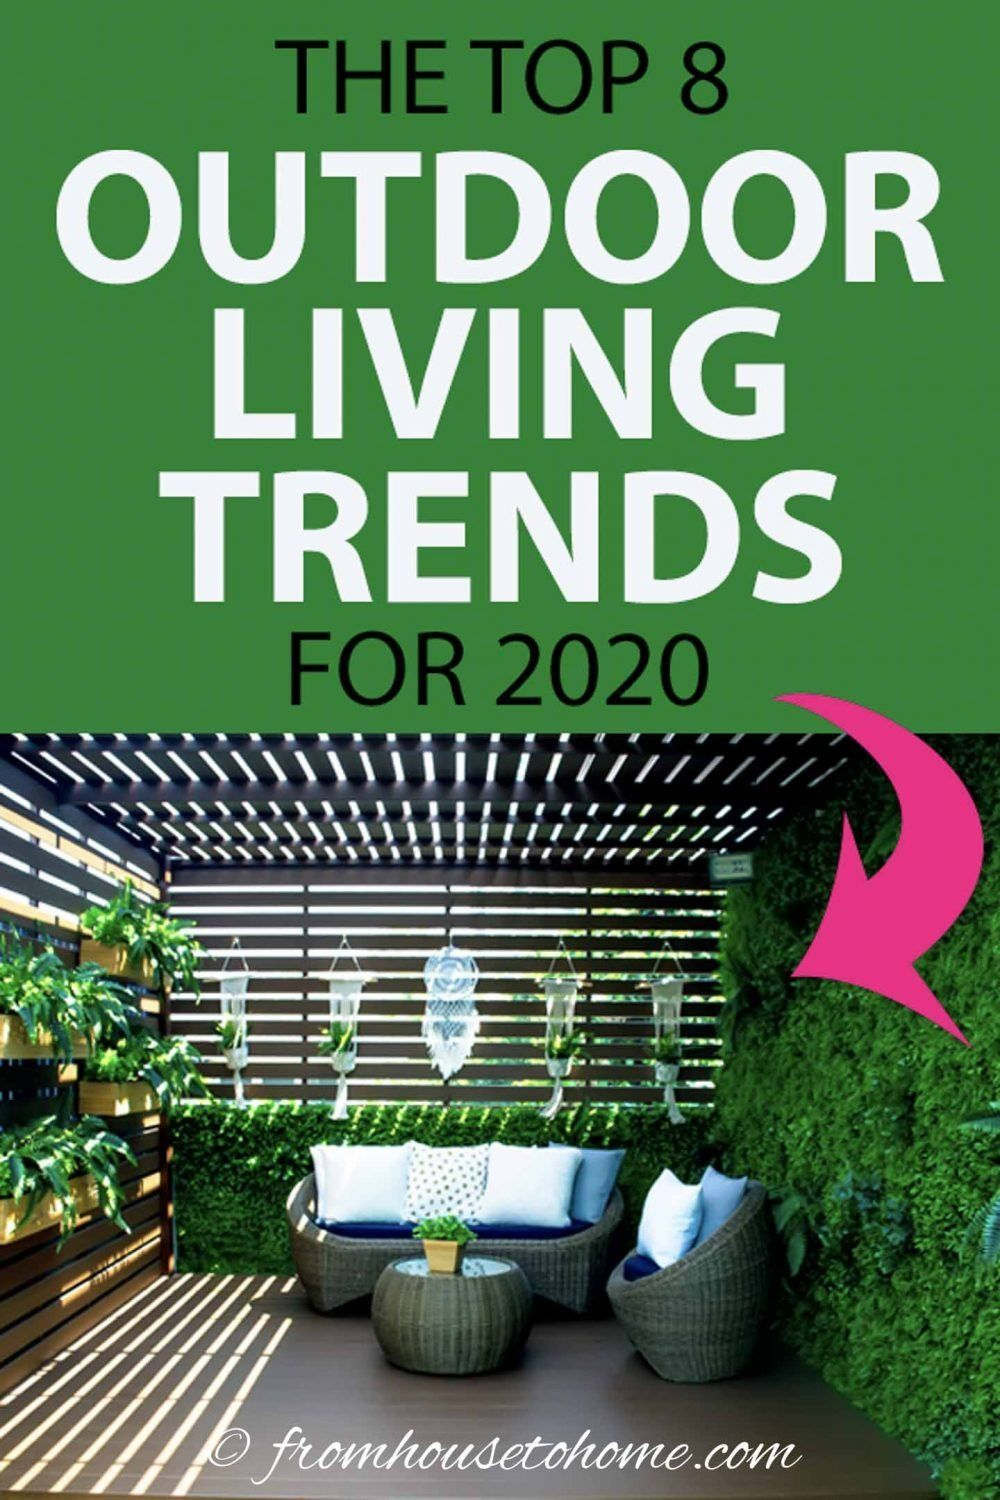 The Top 8 Outdoor Living Trends For 2020 | Rose garden ...